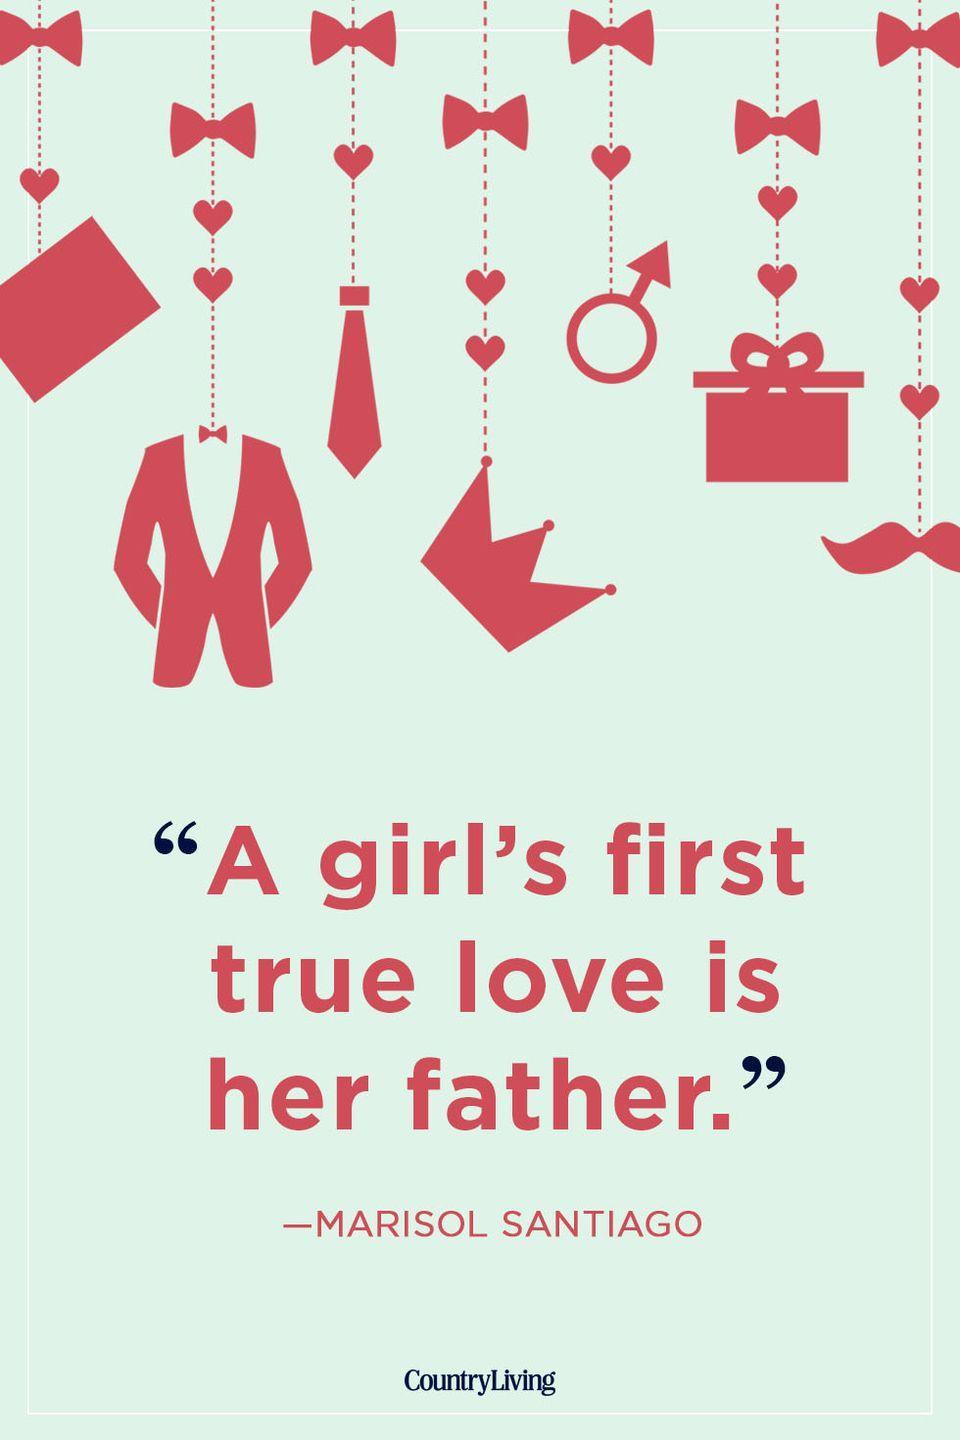 "<p>""A girl's first true love is her father.""</p>"